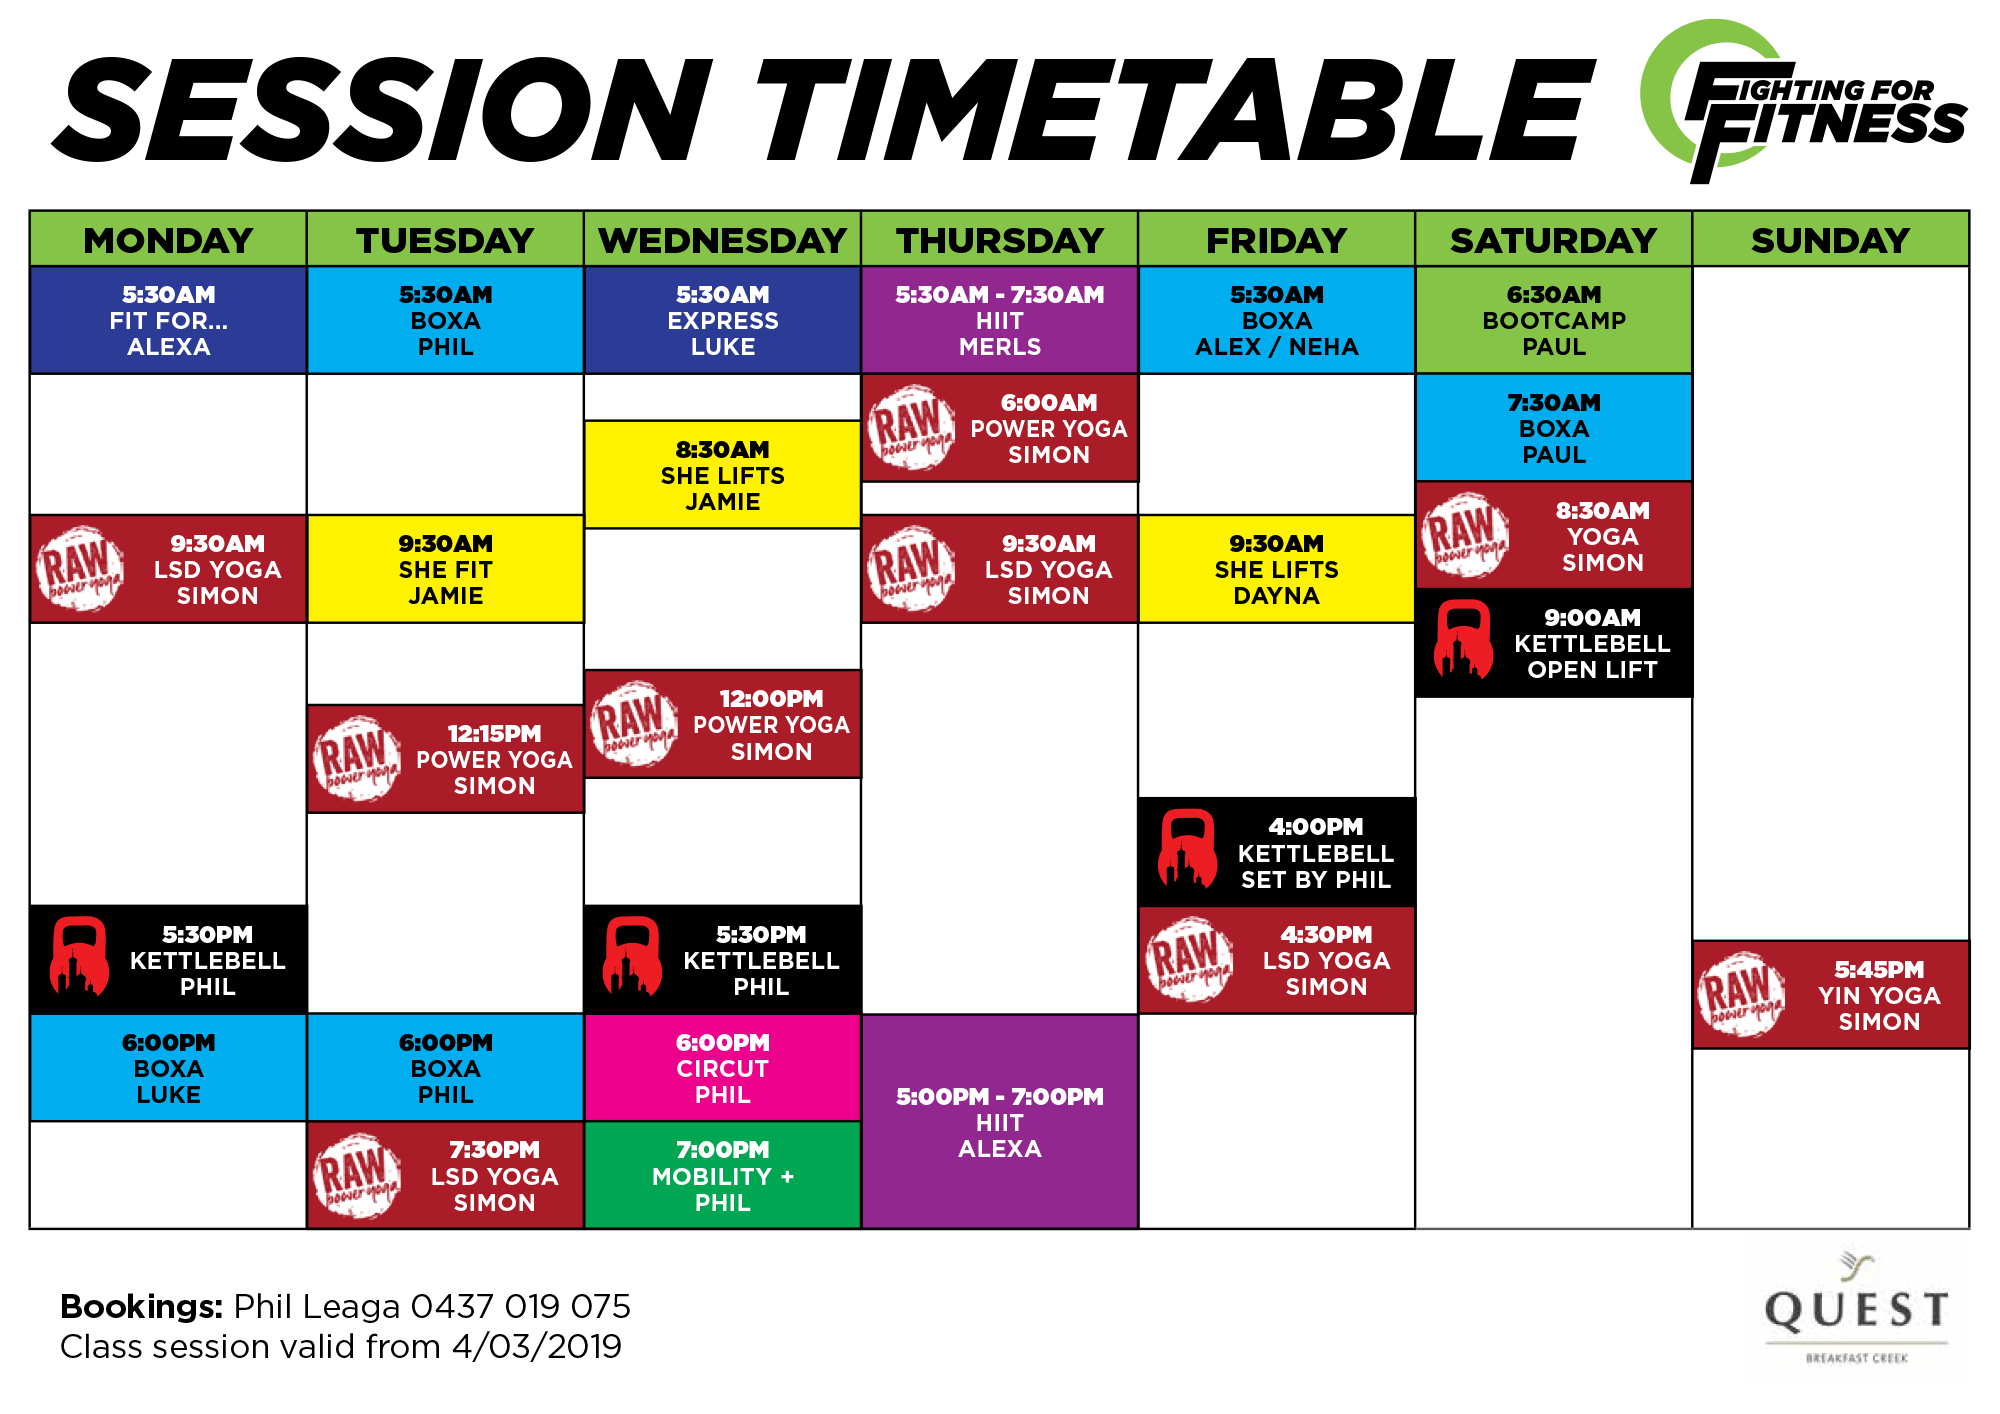 FF_Timetable_A4_040319.png